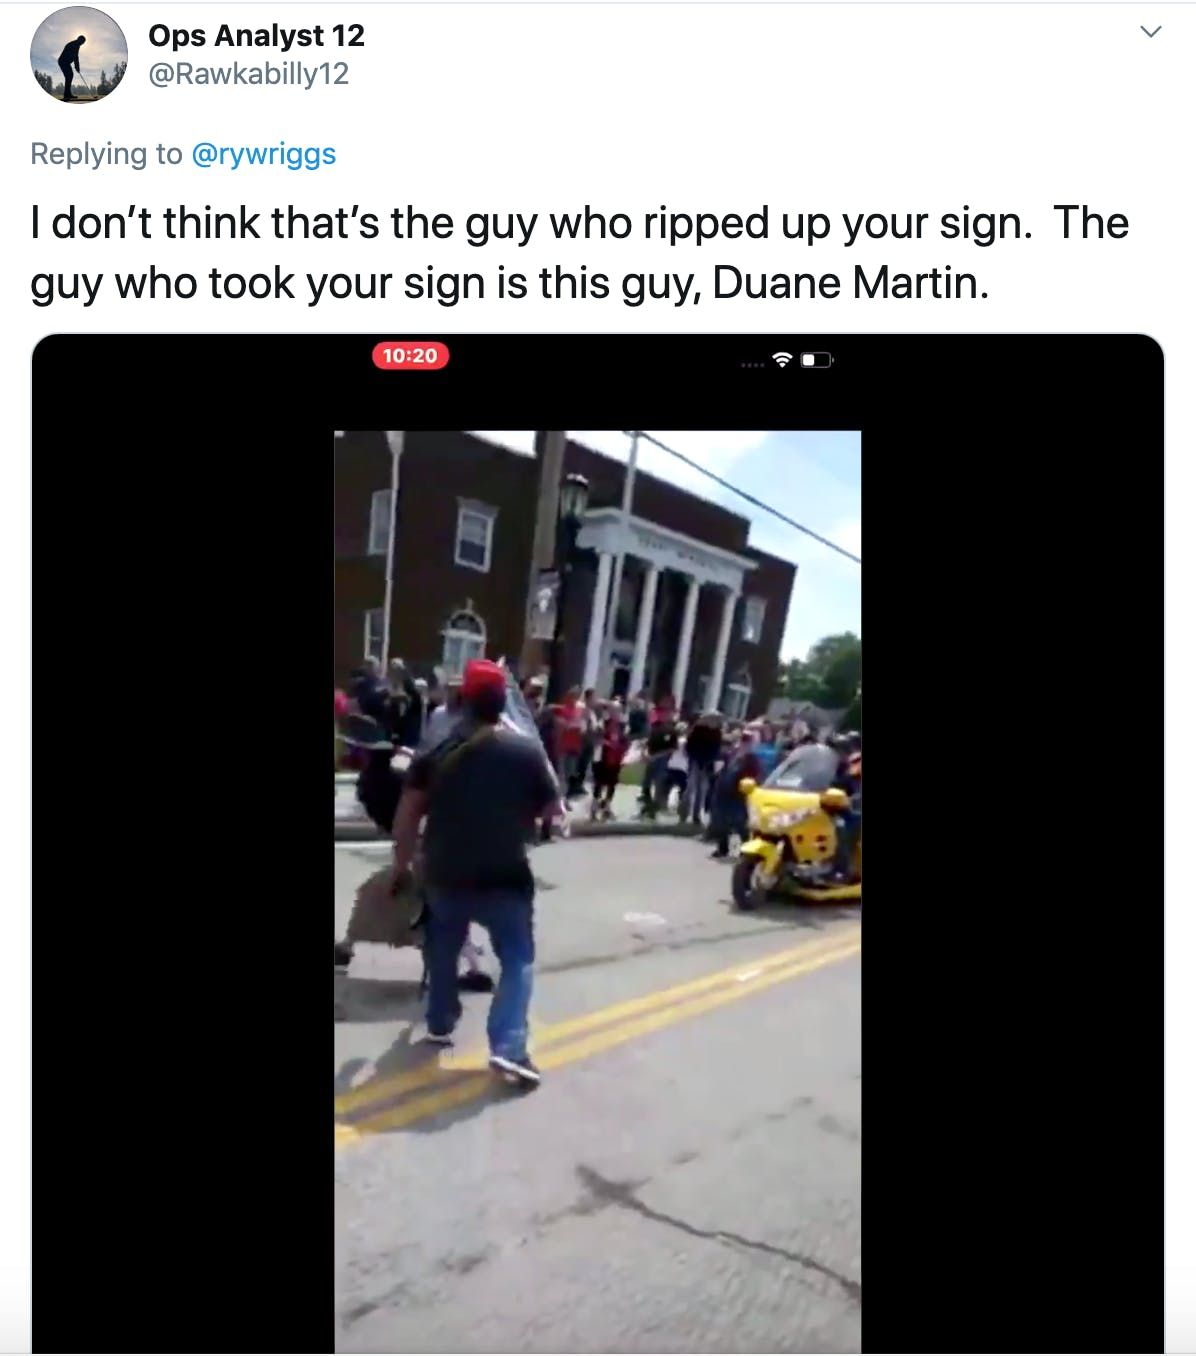 """""""I don't think that's the guy who ripped up your sign.  The guy who took your sign is this guy, Duane Martin."""" followed by an image of a man with a gun lunging at a protester"""